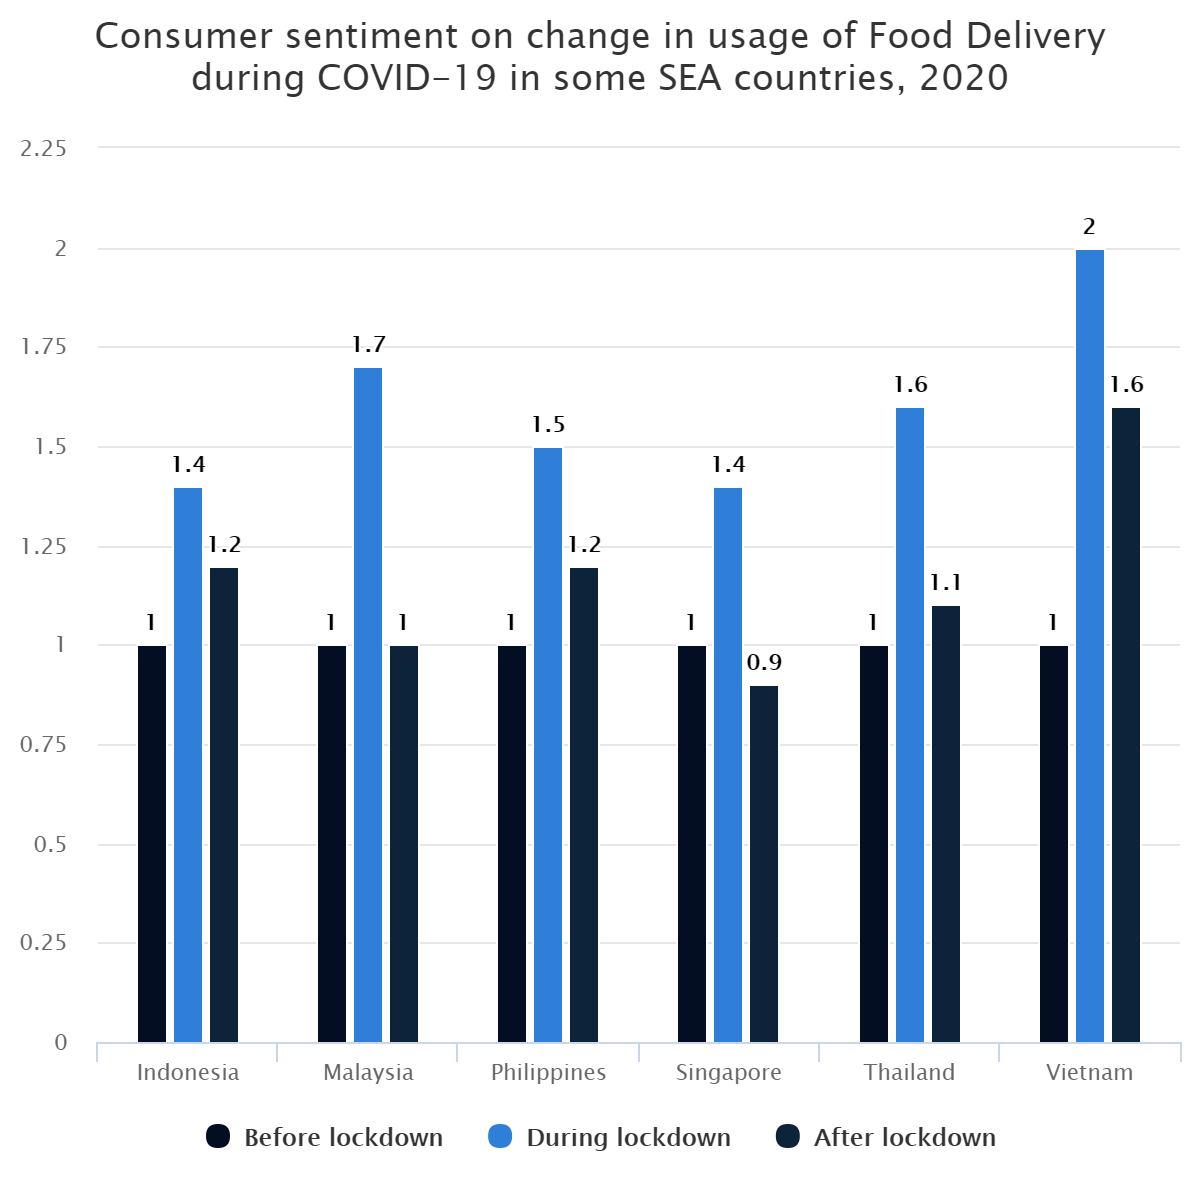 Consumer sentiment on change in usage of Food Delivery during COVID-19 in some SEA countries, 2020